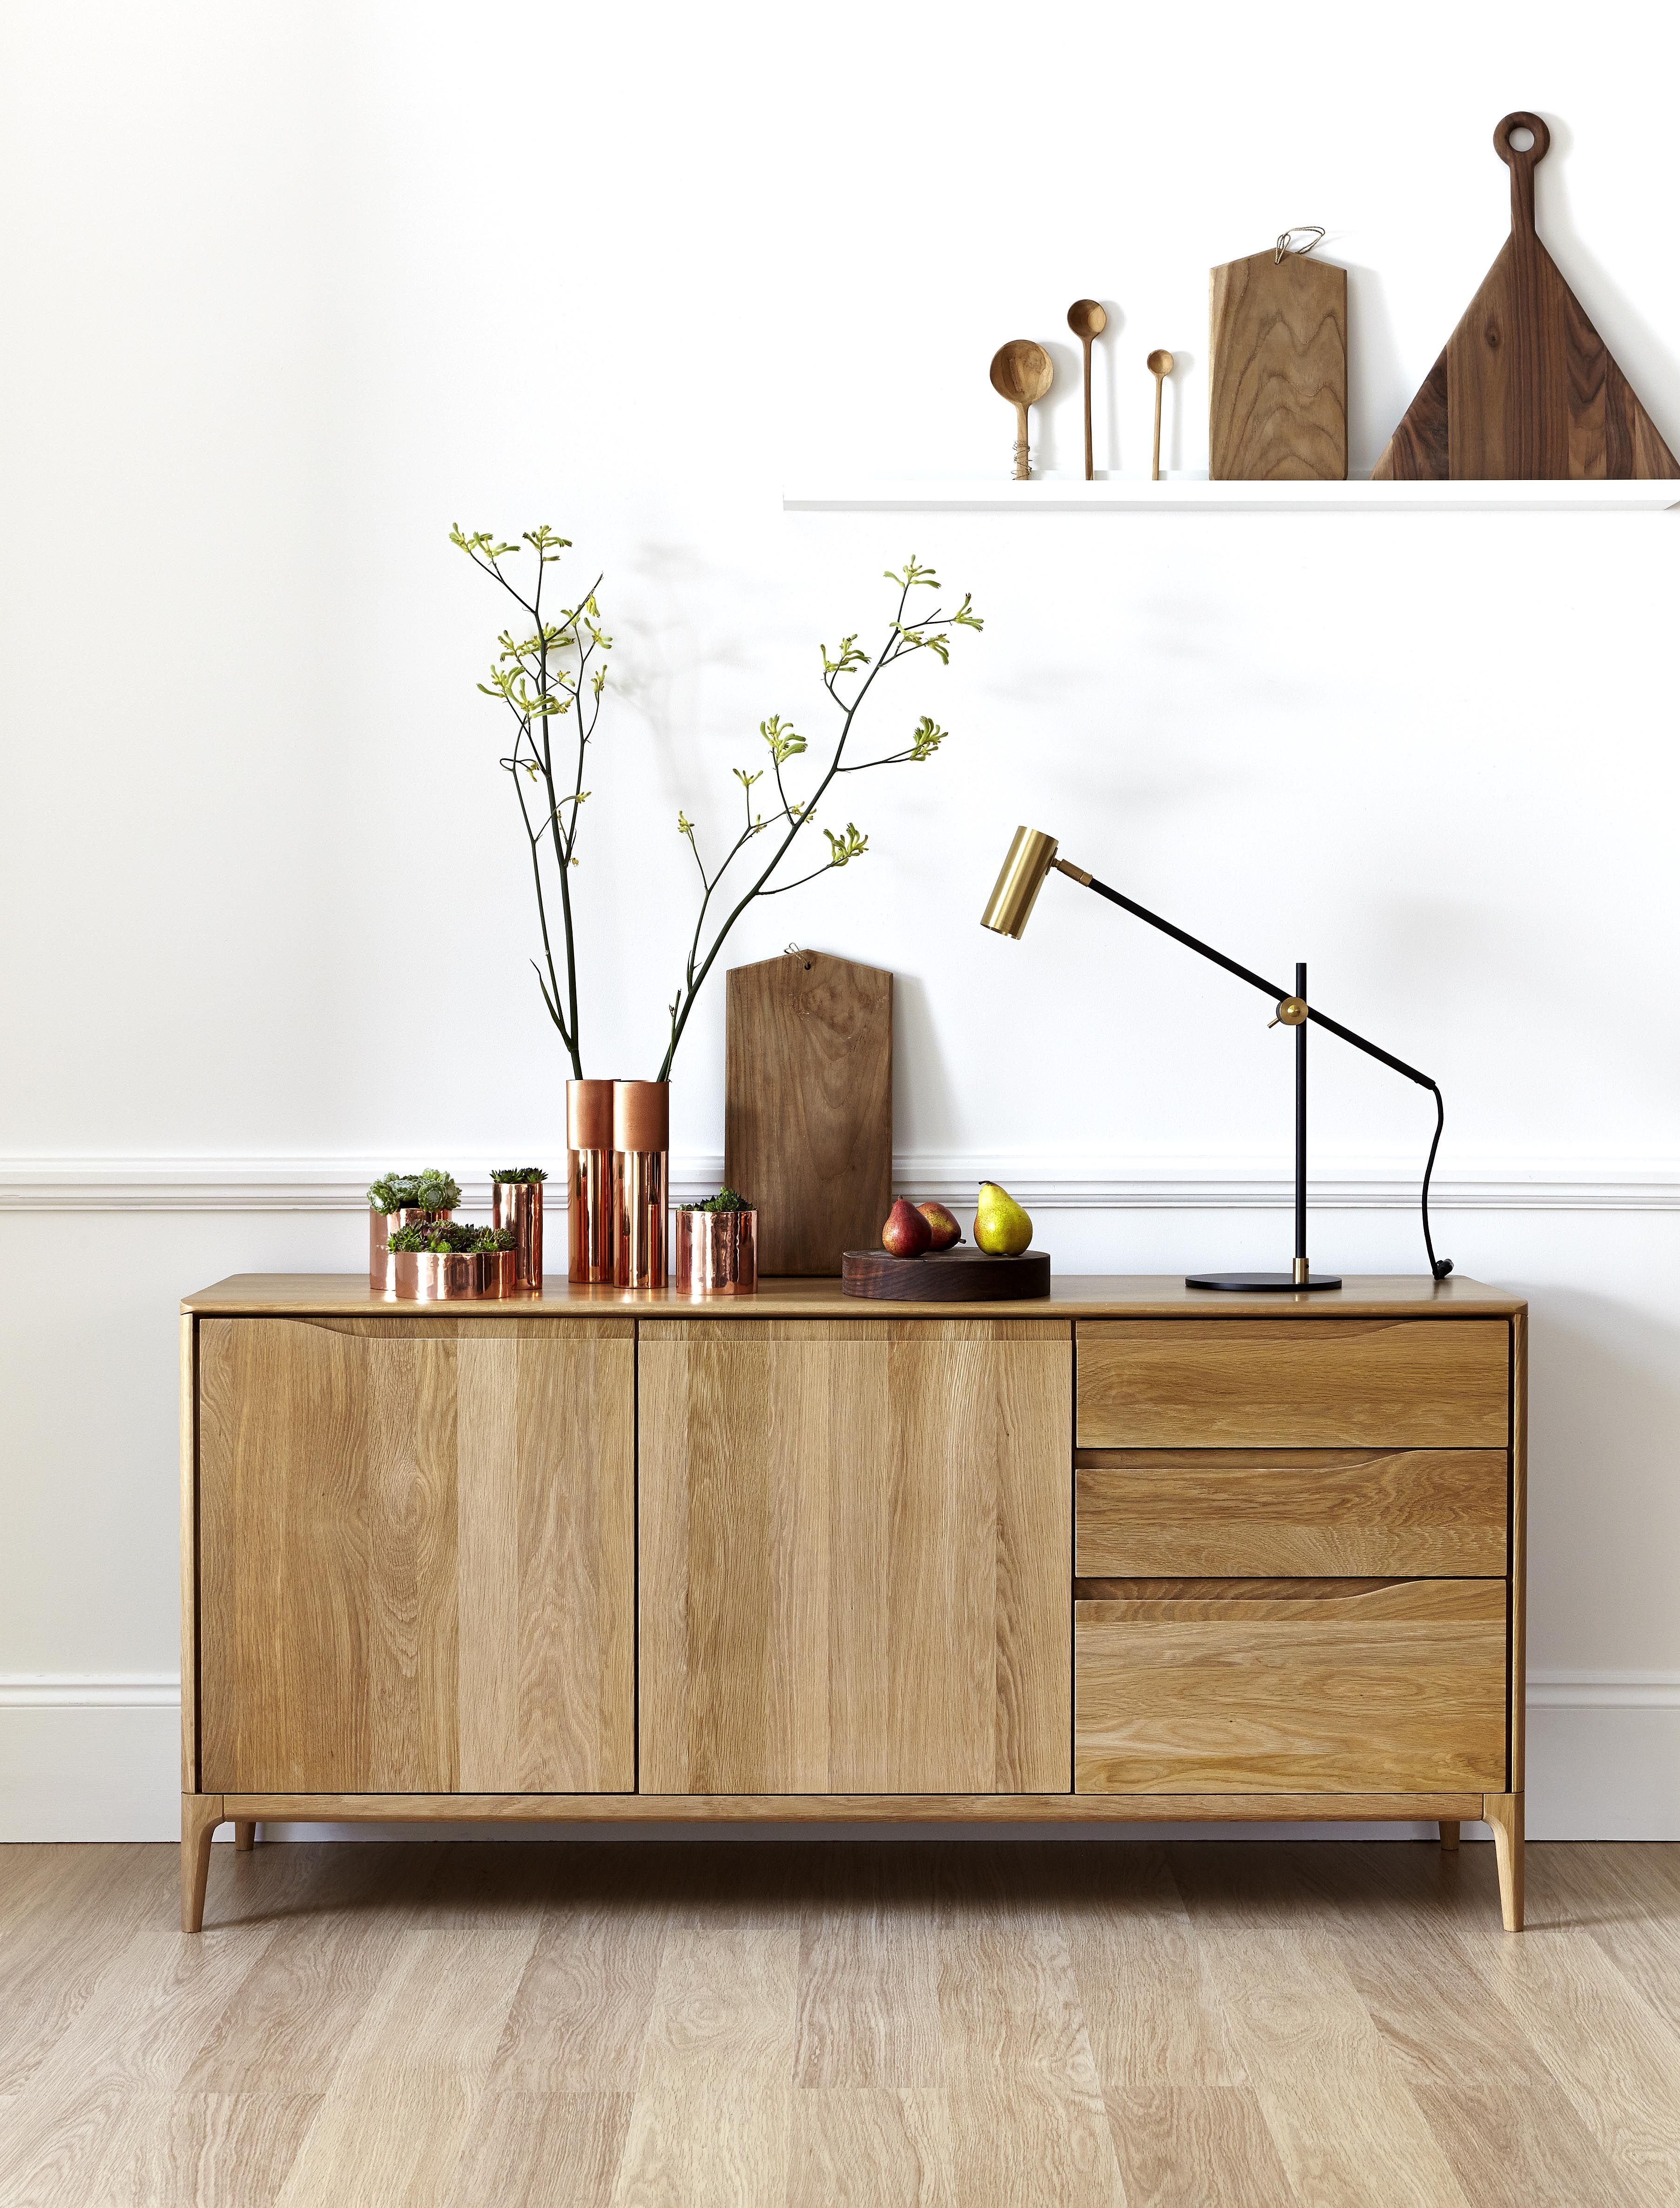 ercol romana sideboard simplel mid century modern style interior design architecture. Black Bedroom Furniture Sets. Home Design Ideas